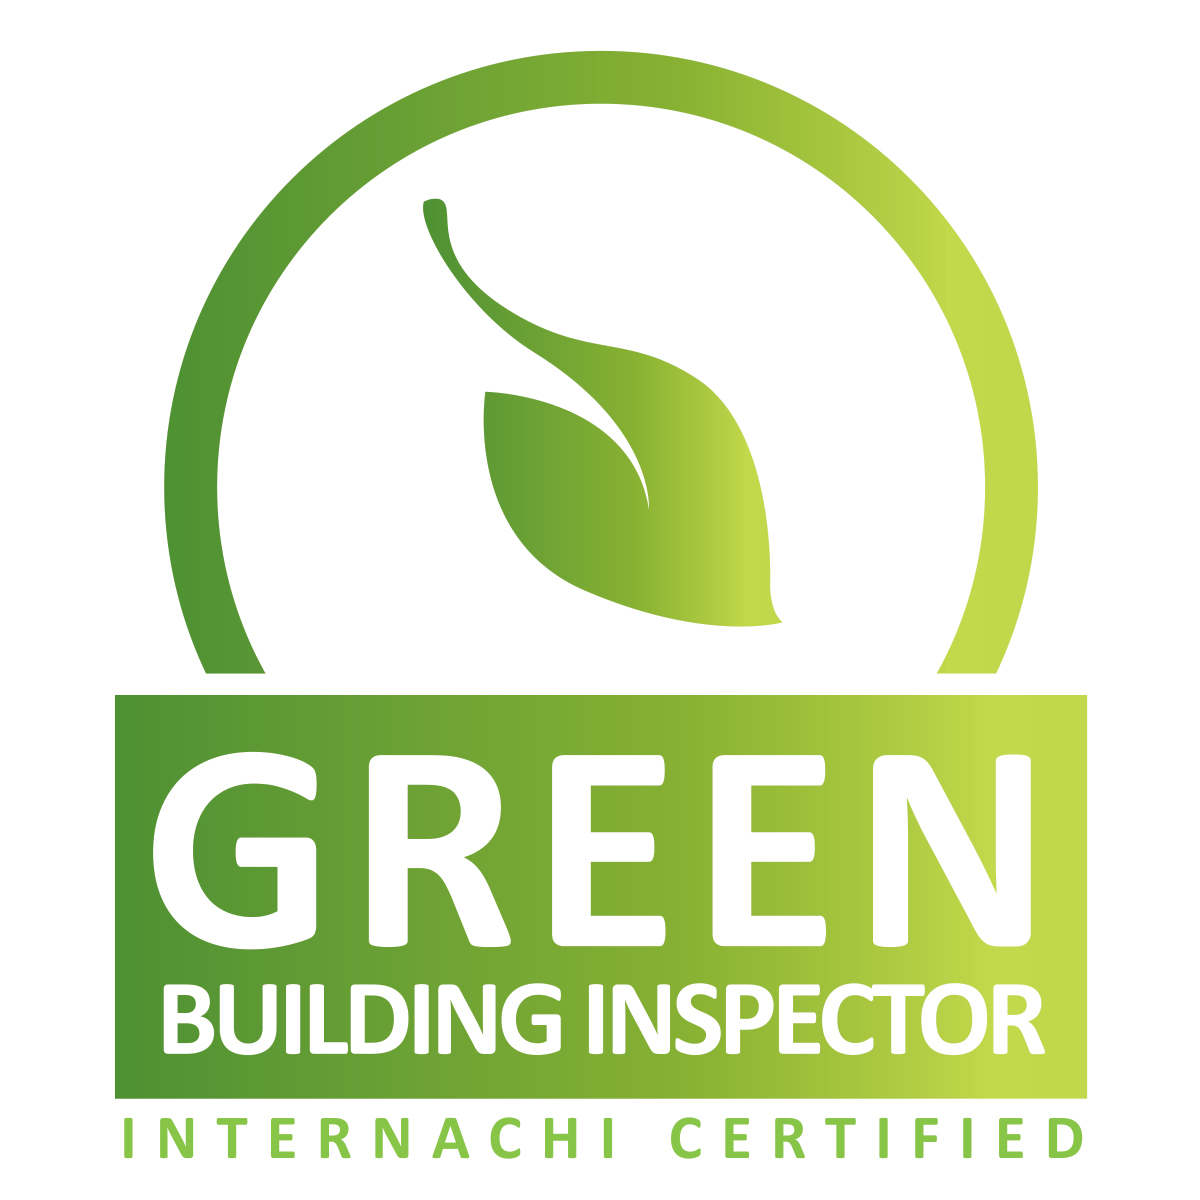 Become A Certified Green Building Inspector Internachi